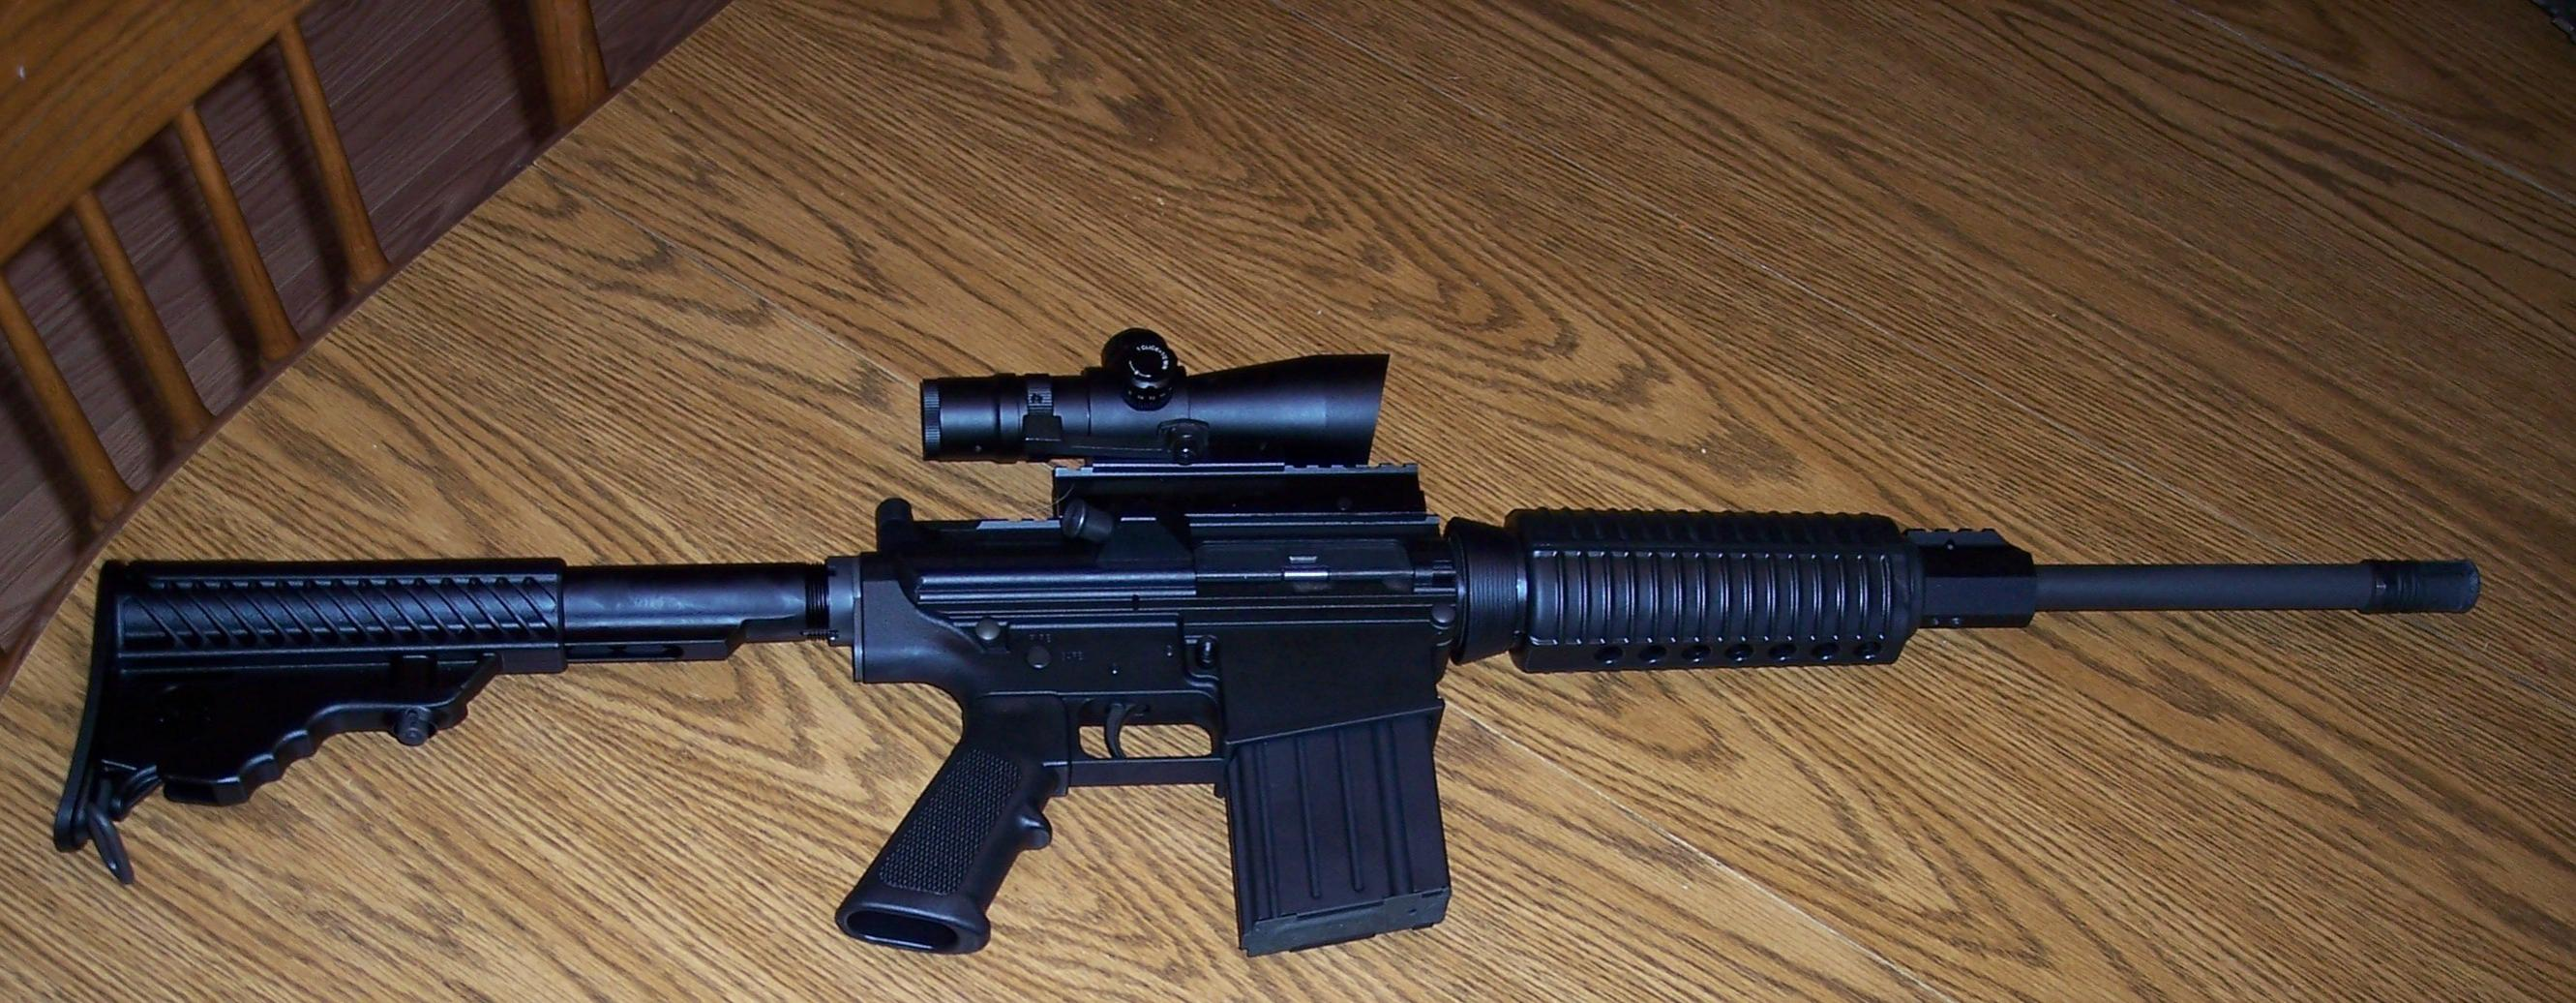 Tactical .308-dpms_panther_lr308_oracle_7.62x51.jpg